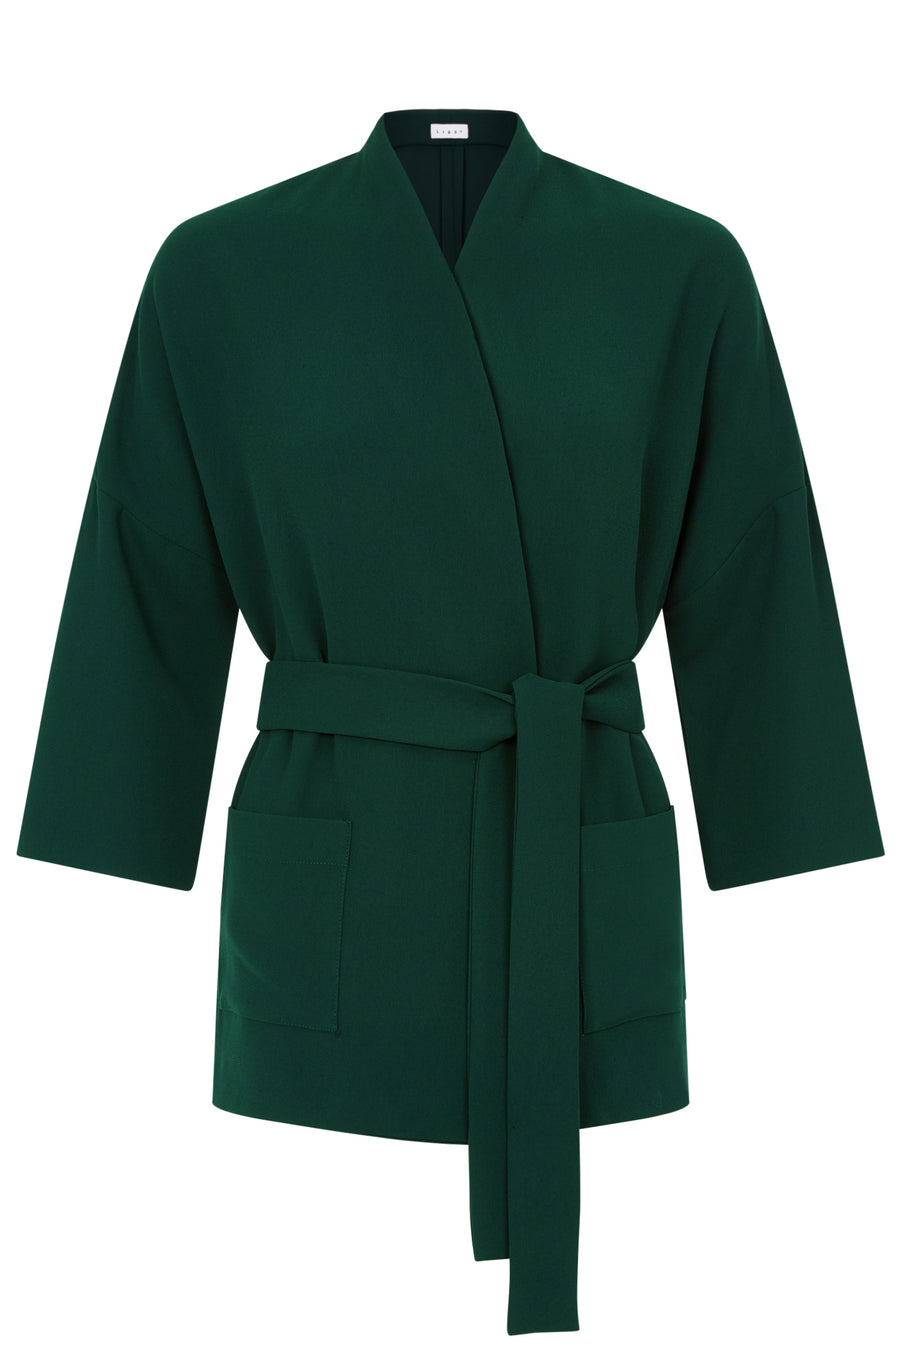 Battersea Green Crepe Jacket